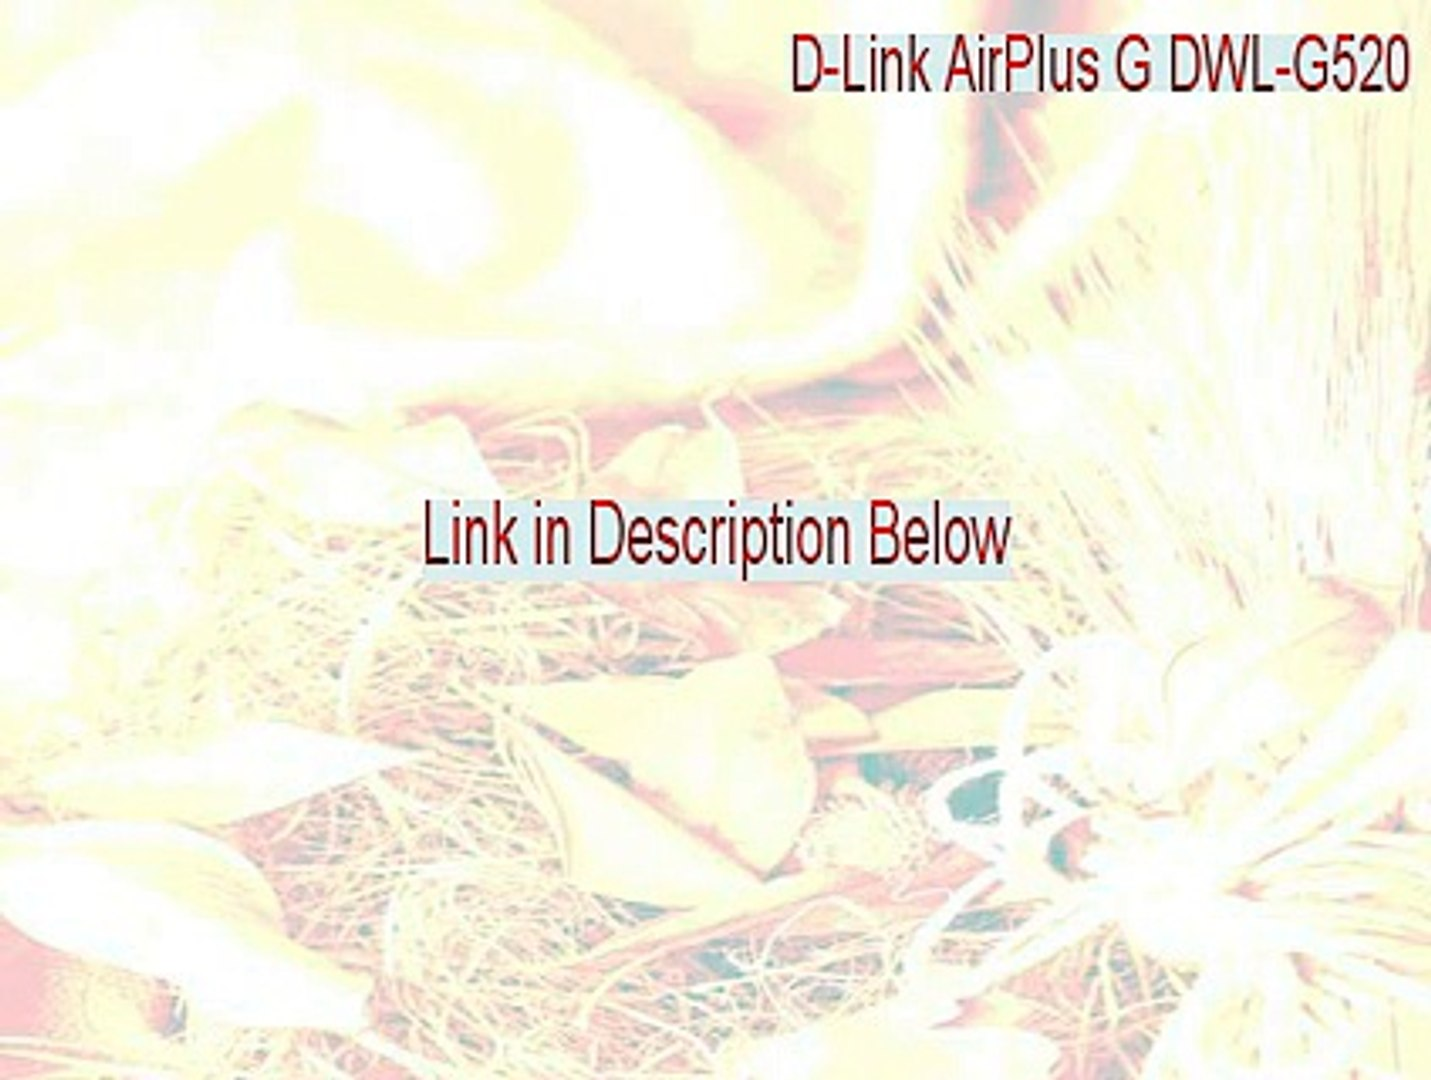 D-Link AirPlus G DWL-G520+A Wireless PCI Adapter Full